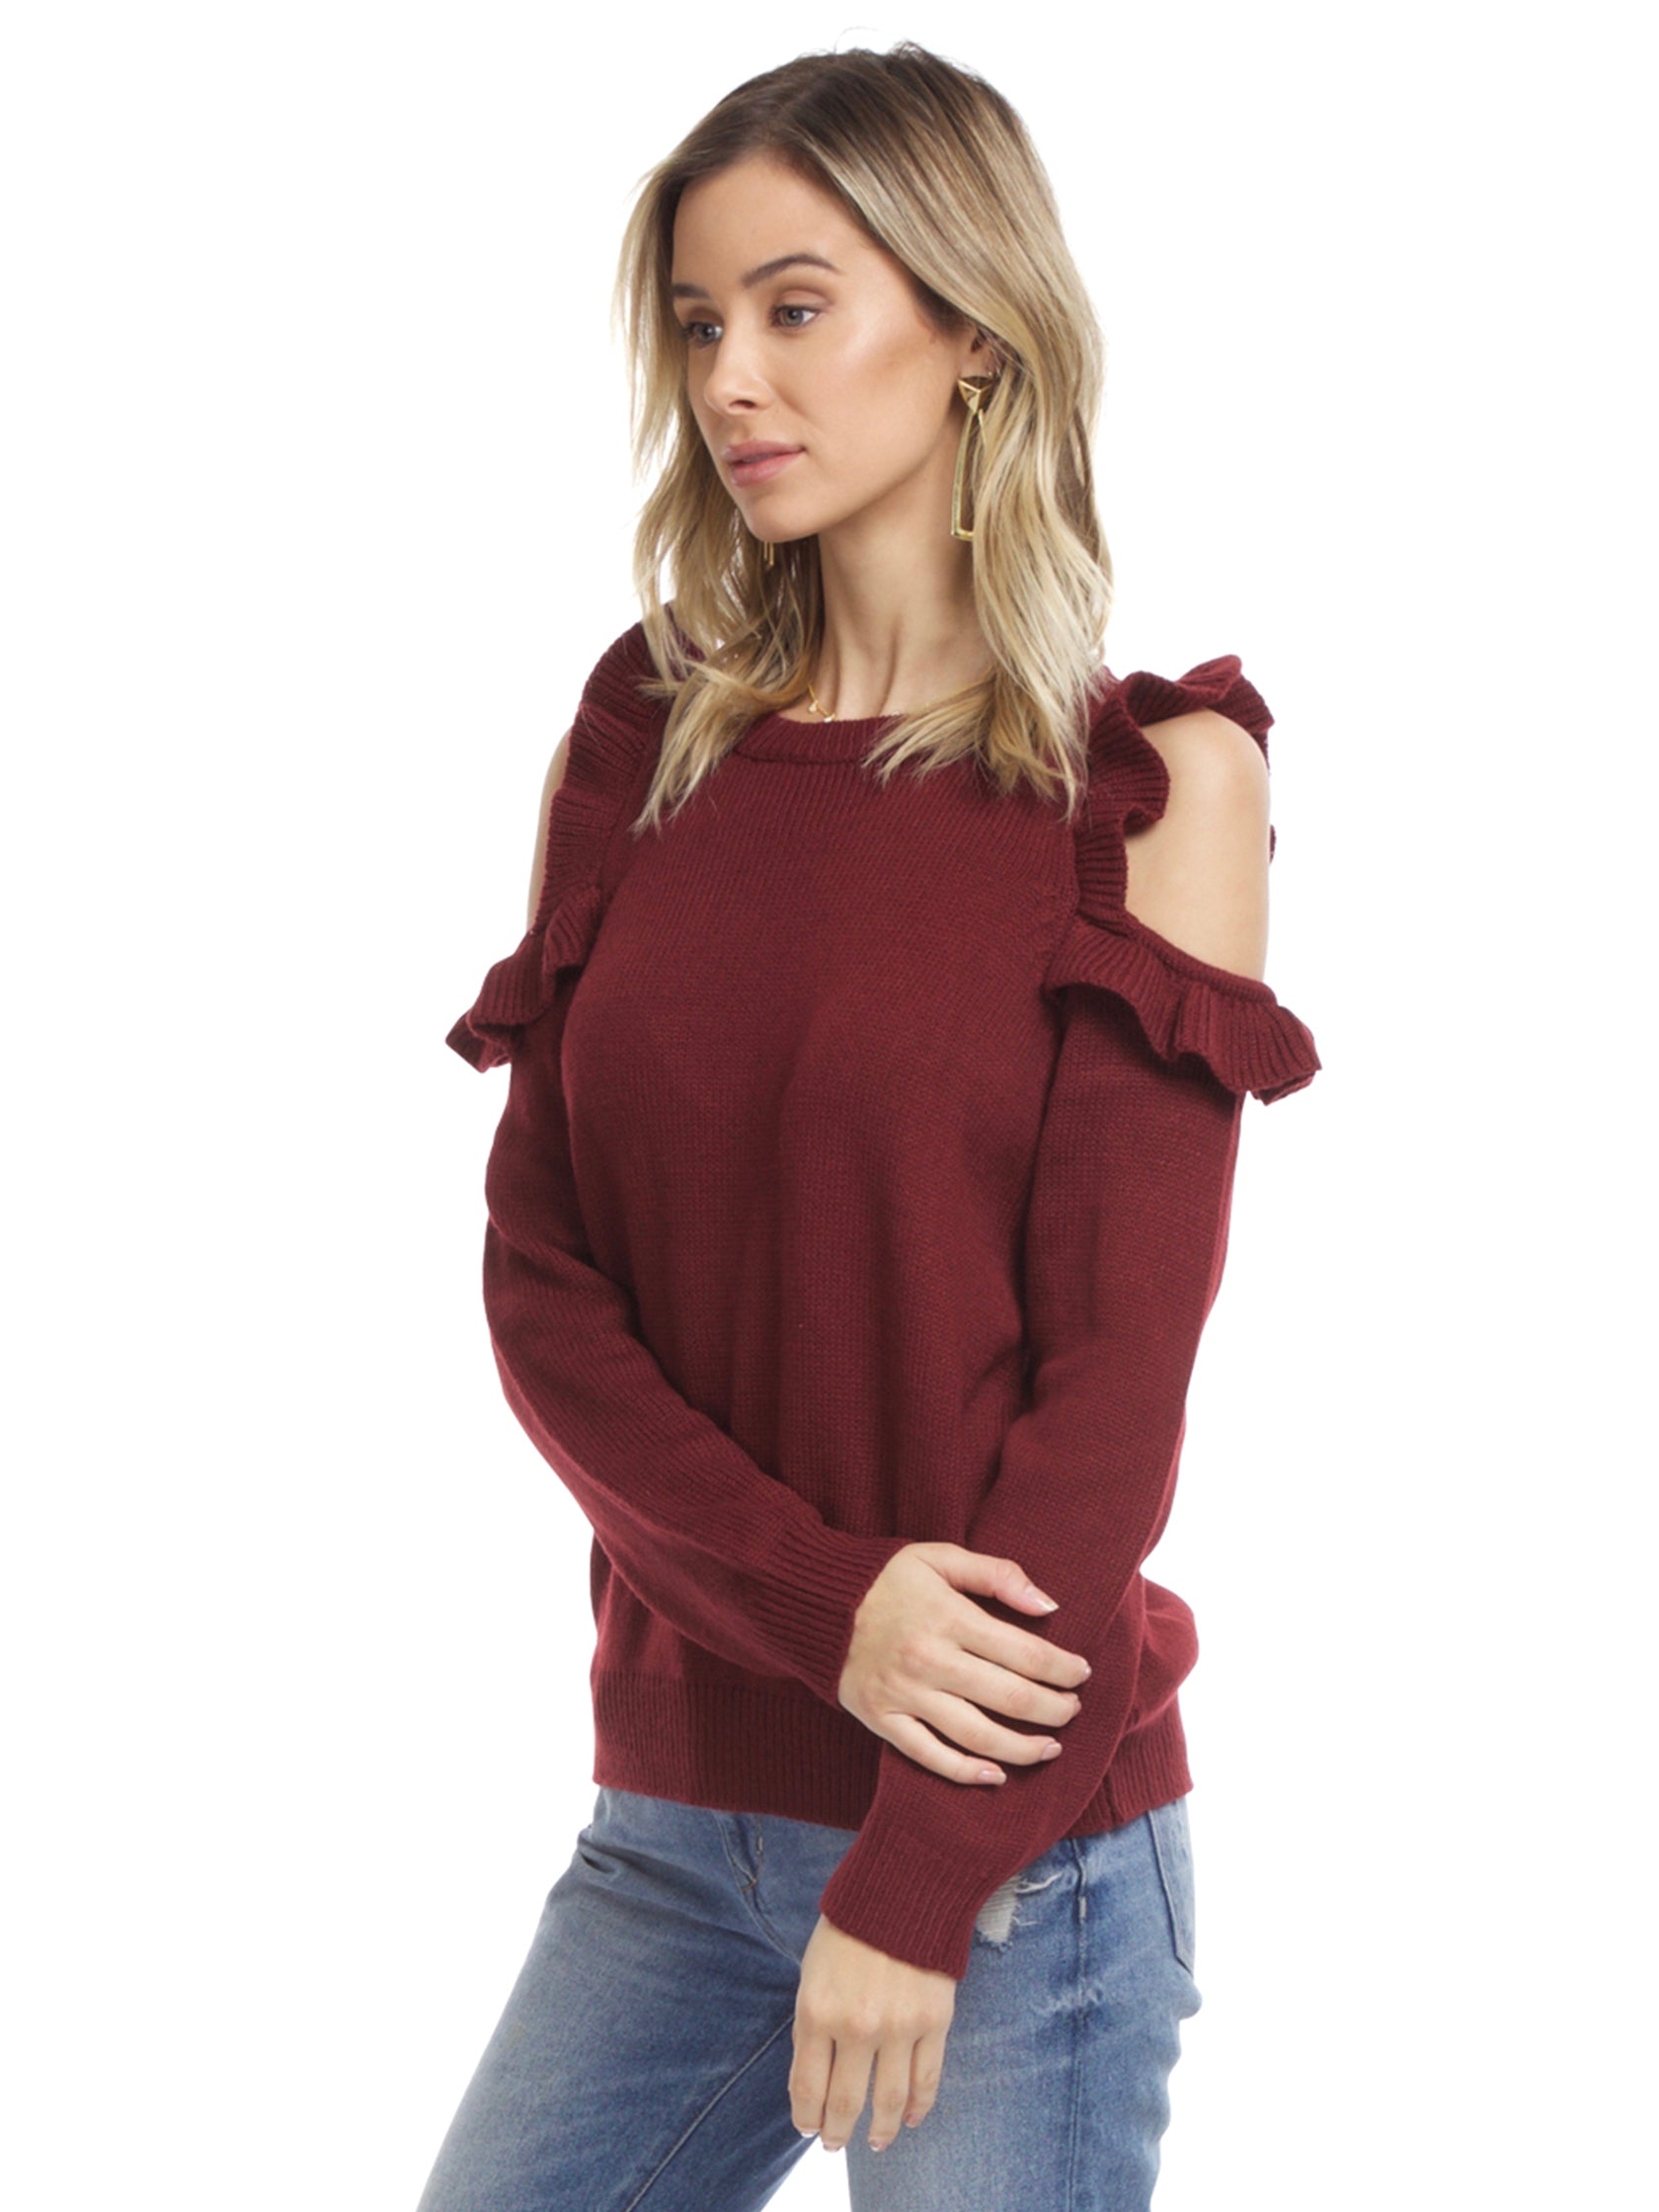 Women wearing a sweater rental from FashionPass called Harmony Cold Shoulder Sweater